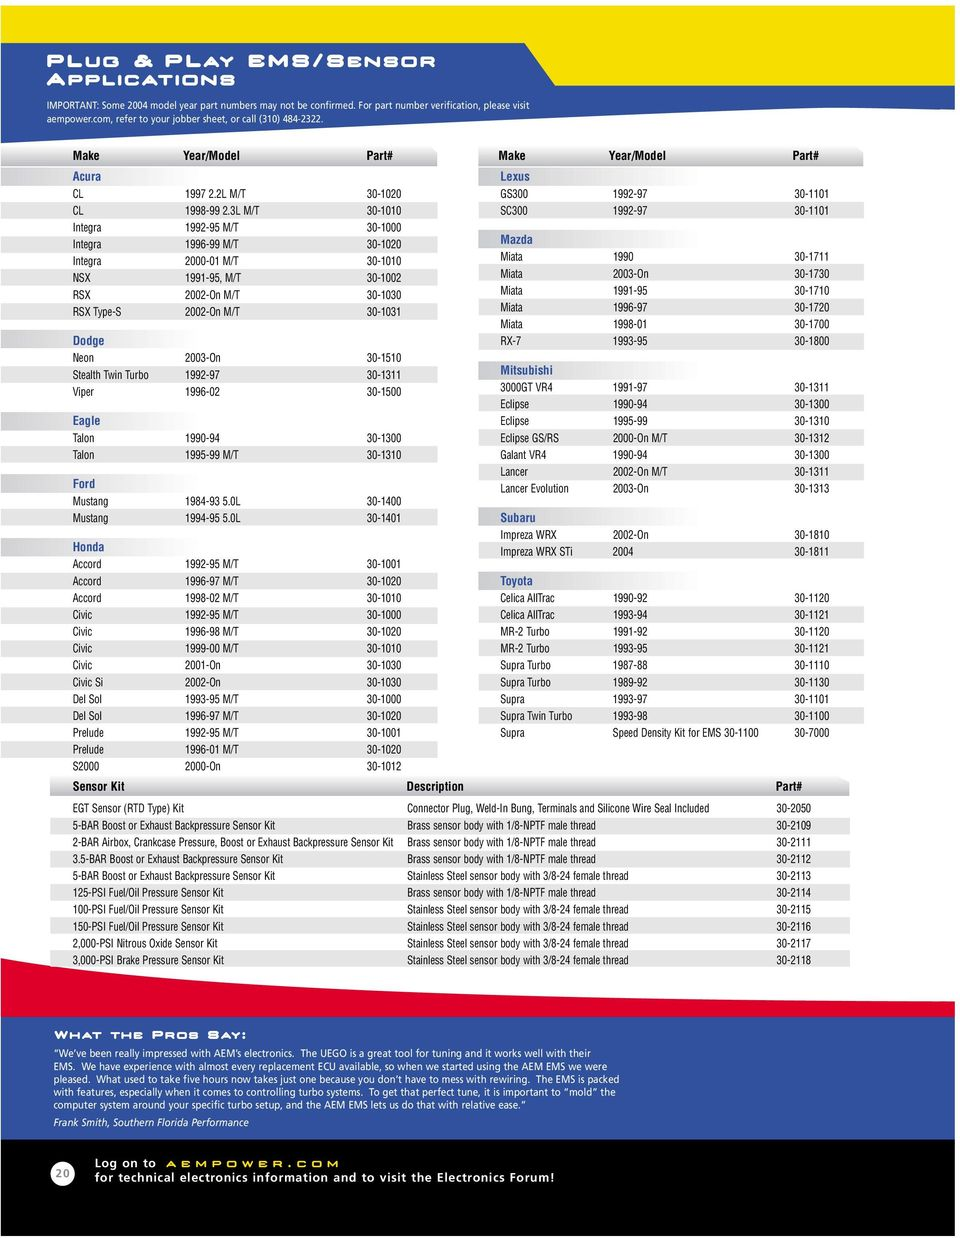 Table Of Contents Horsepower It S How Our Reputation Was Built 1999 Audi A4 Quatro 2800 Engine Compartment Use Box Diagram 3l M T 30 1010 Integra 1992 95